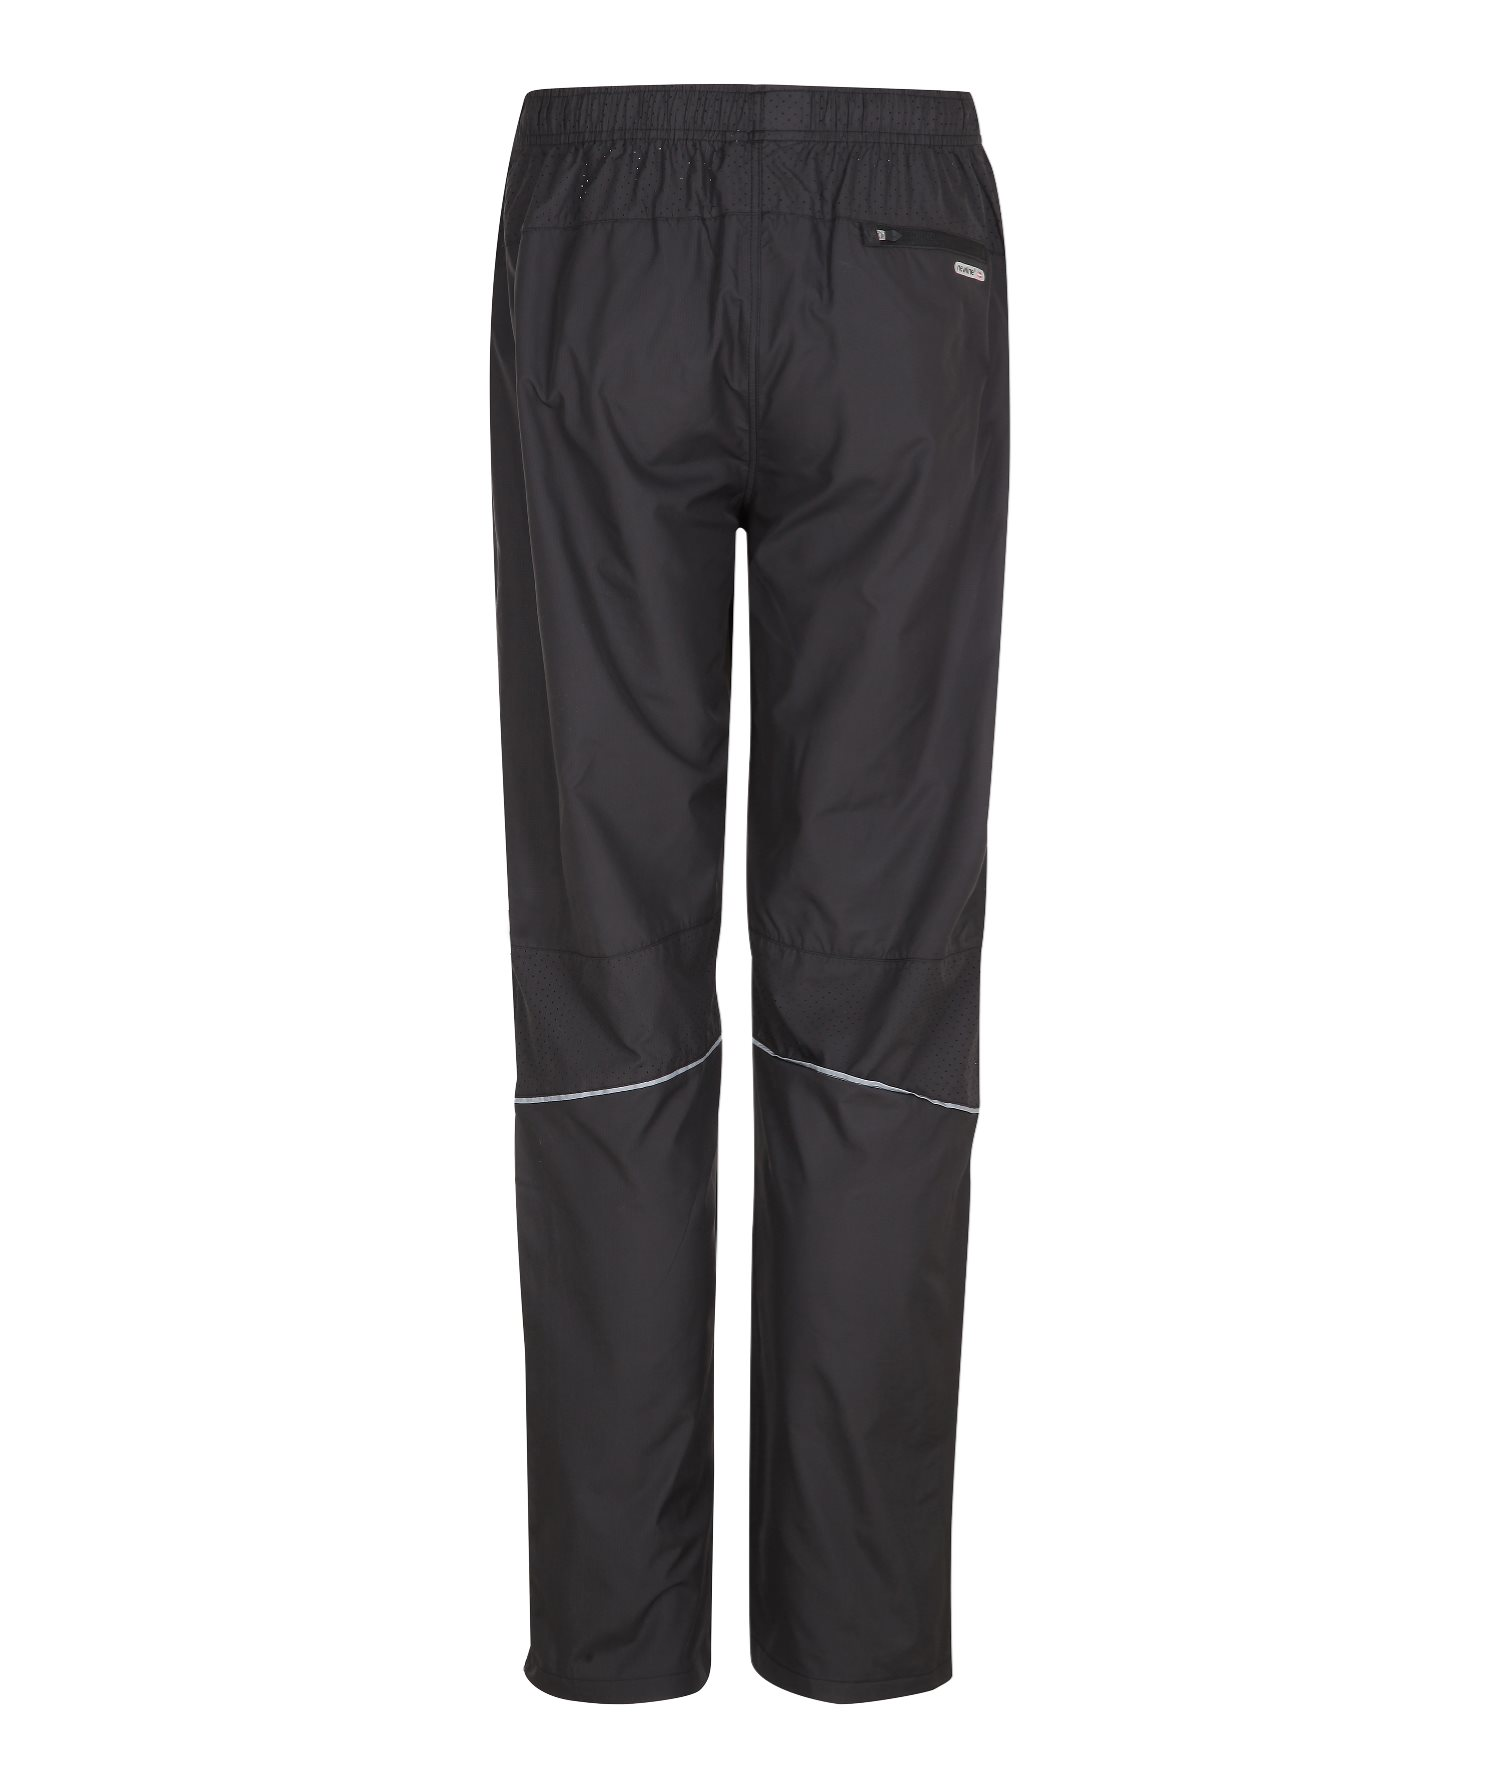 Newline Base Thermal Pants Herren